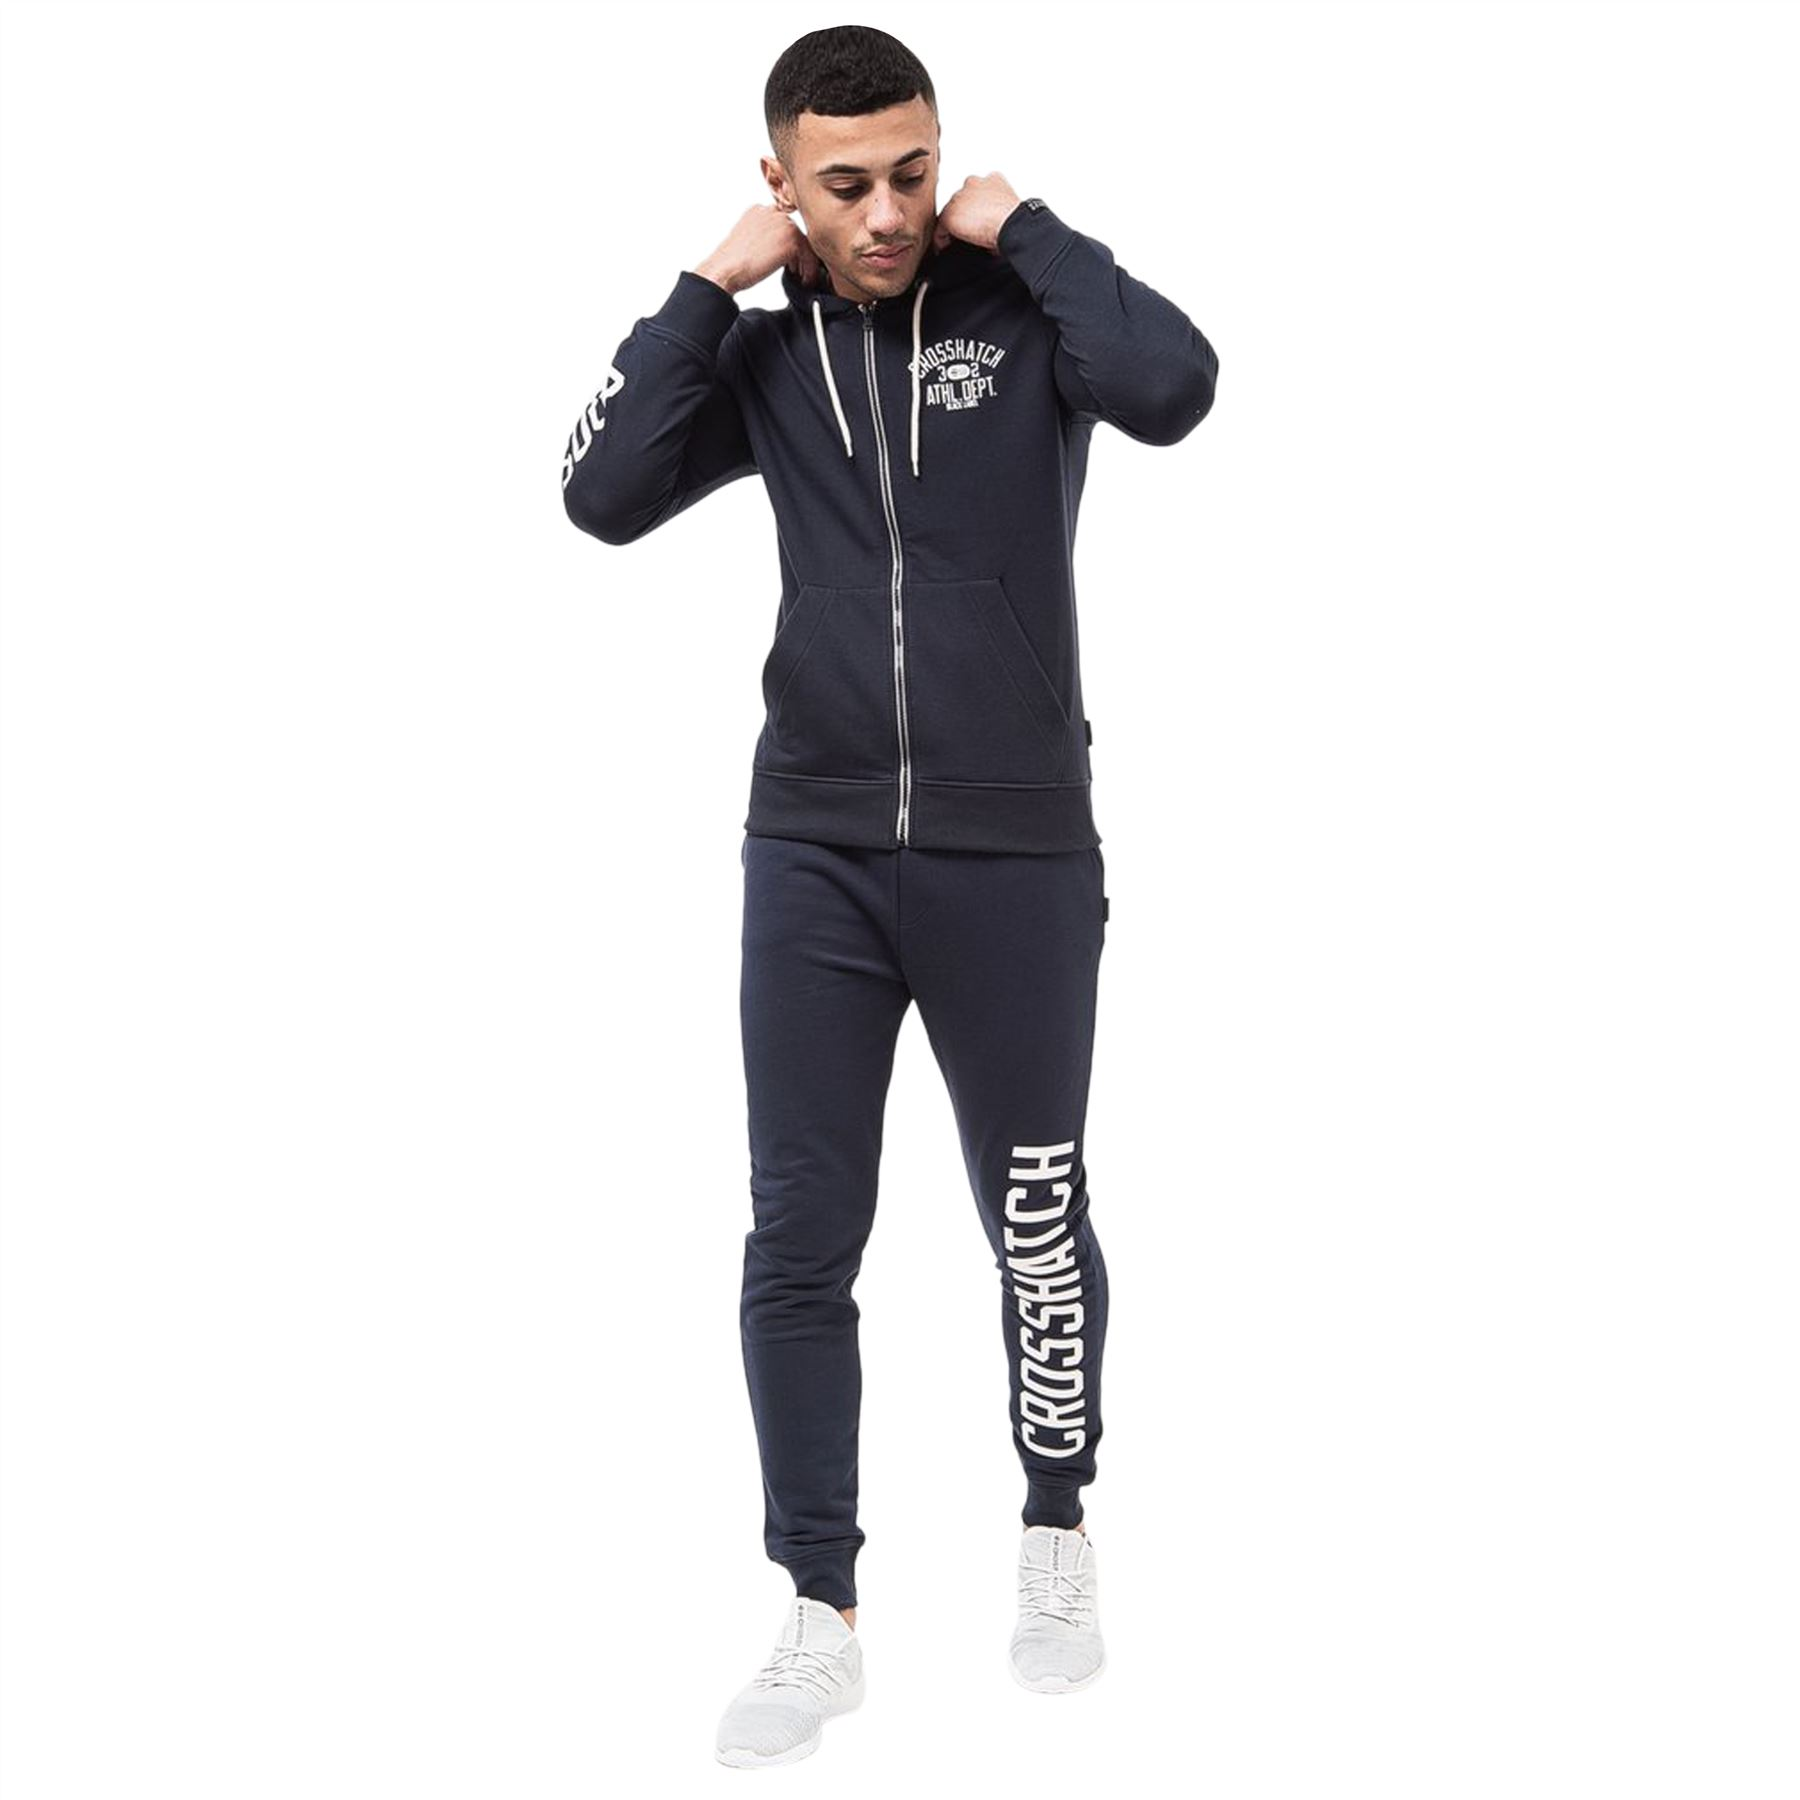 Mens-Jogger-Pants-Crosshatch-Rapton-Tracksuit-Jogging-Trousers thumbnail 6